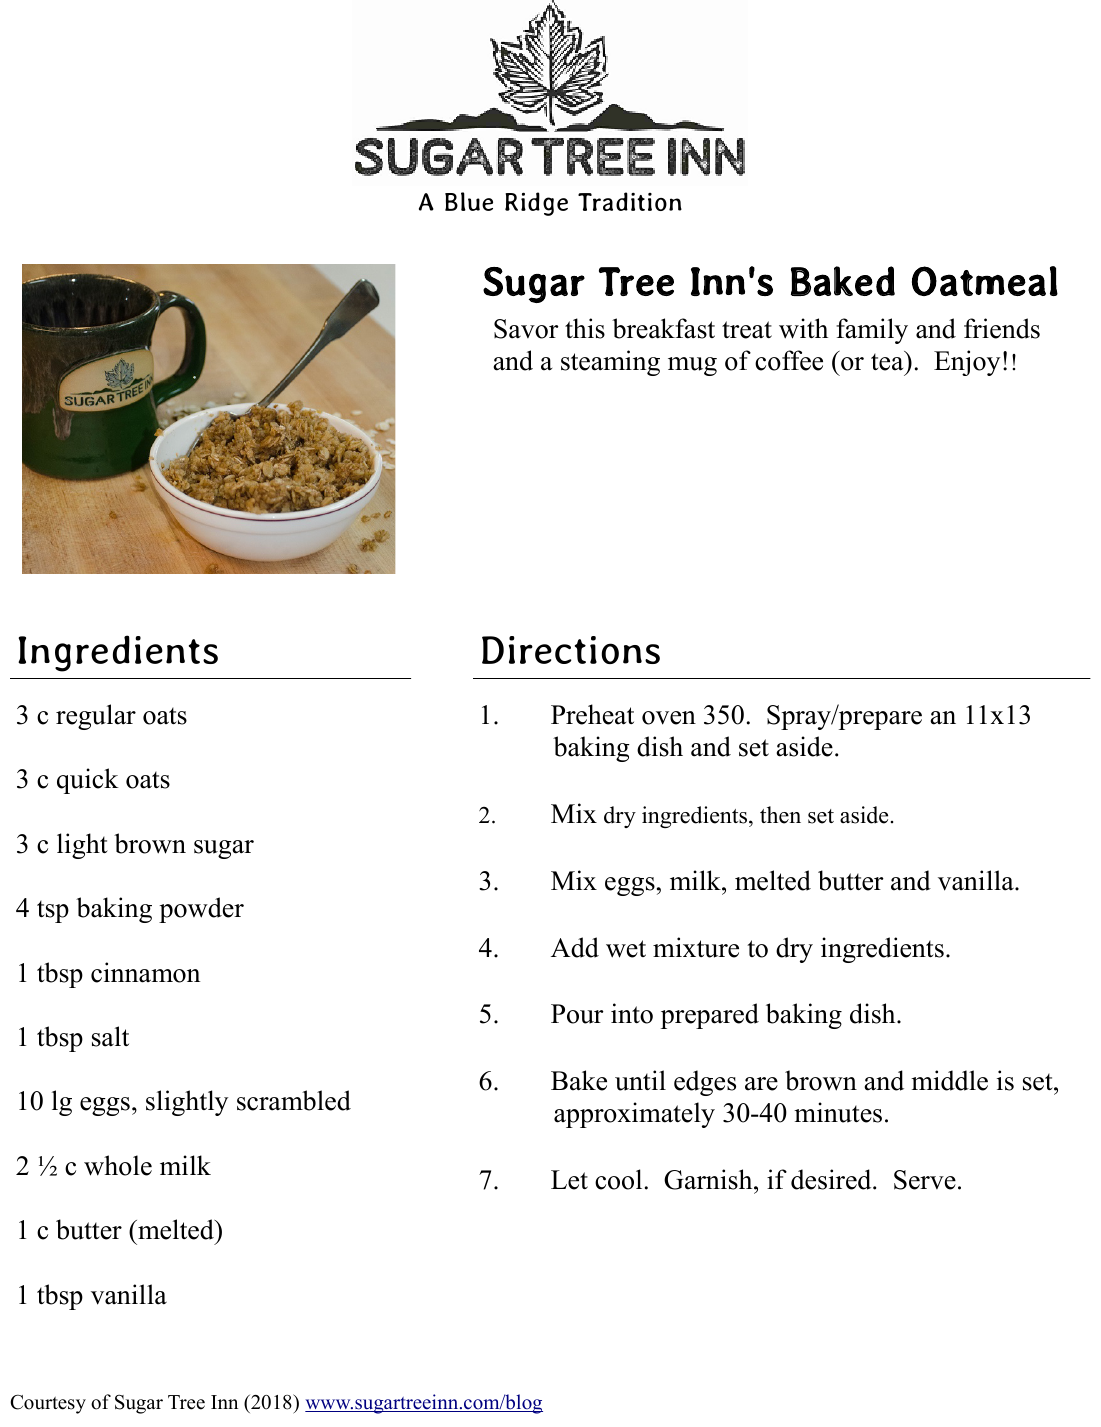 Sugar Tree Inn's Baked Oatmeal Recipe